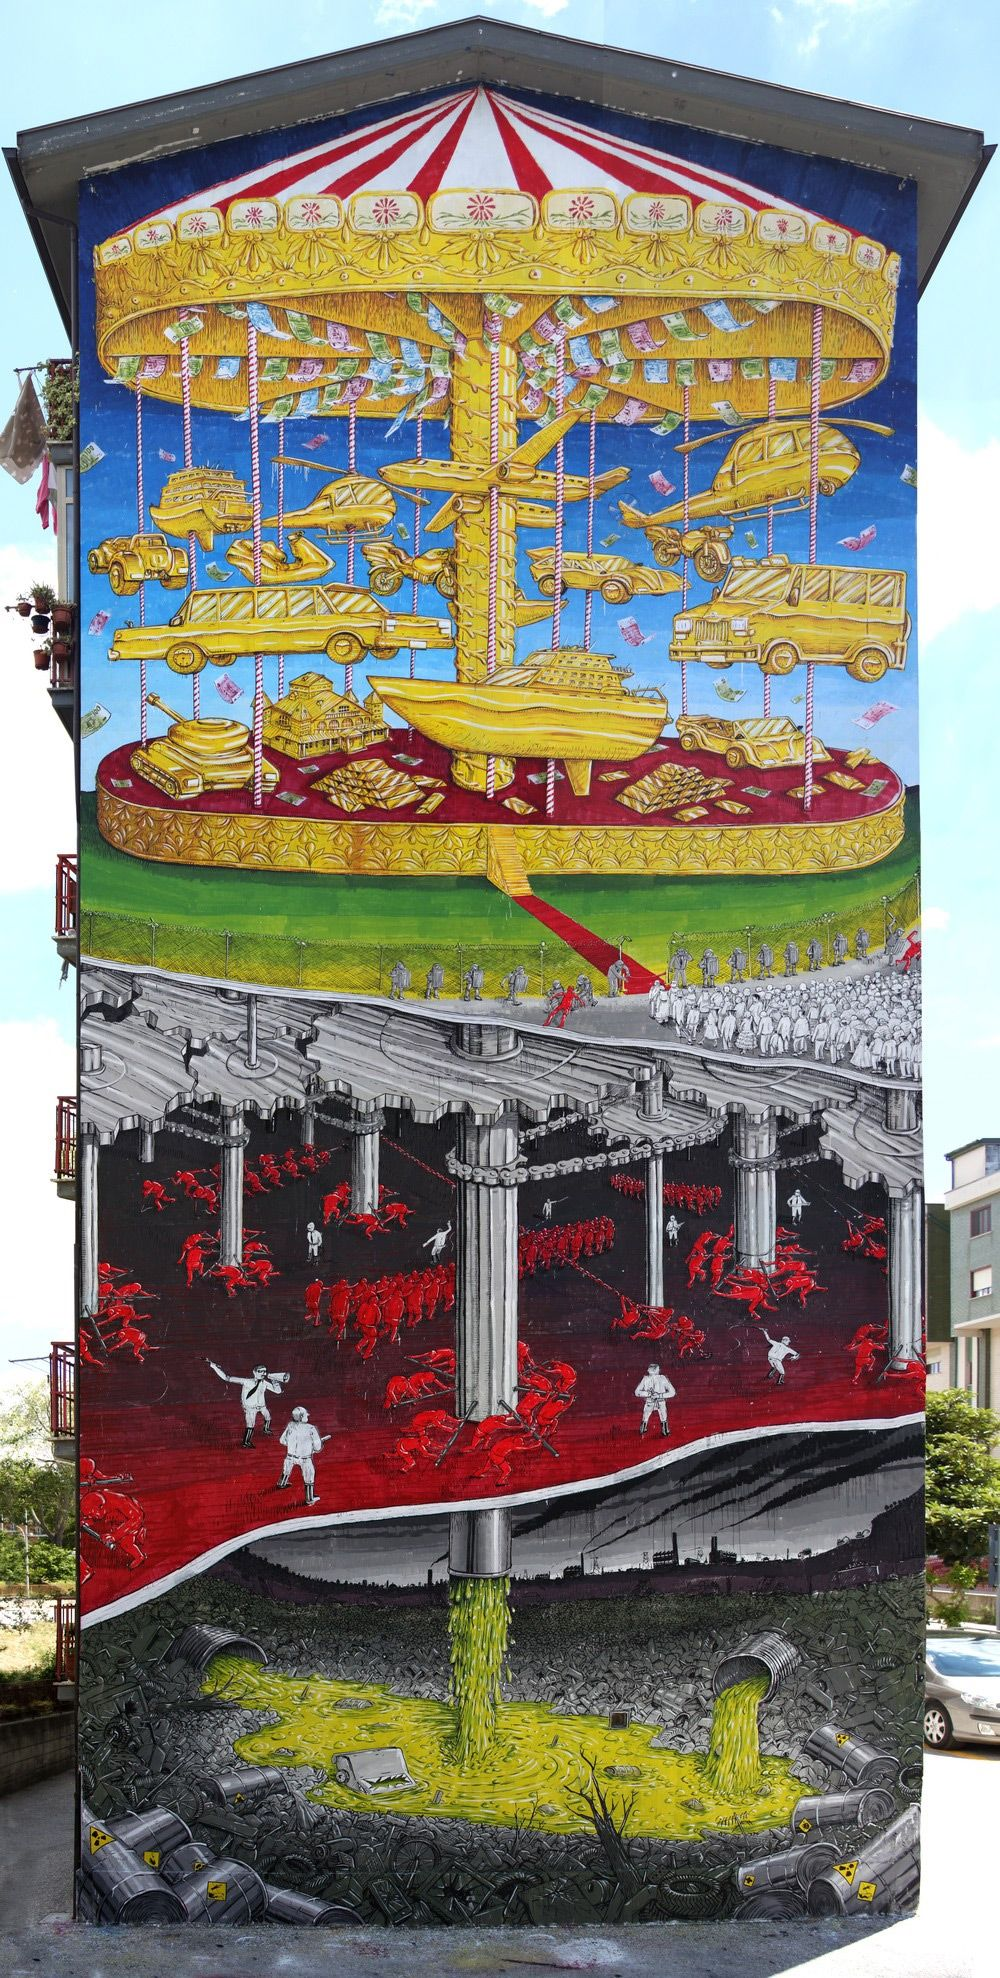 Towering Murals By Blu On The Streets Of Italy Confront